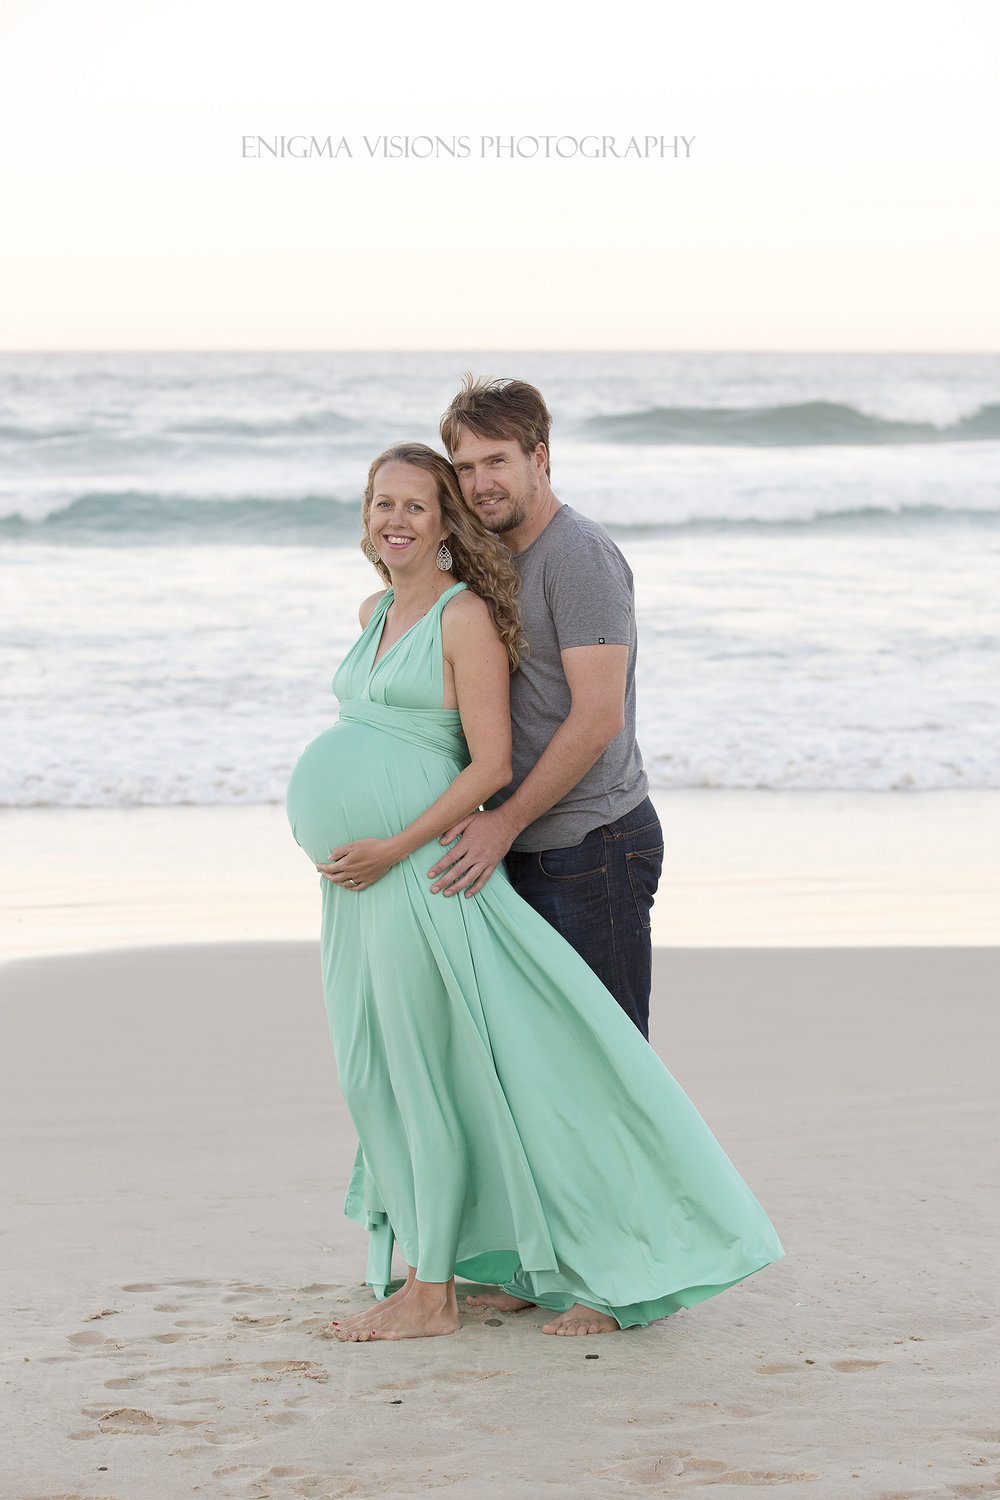 enigma_visions_photography_maternity_melandandrew_kingscliff (43).jpg